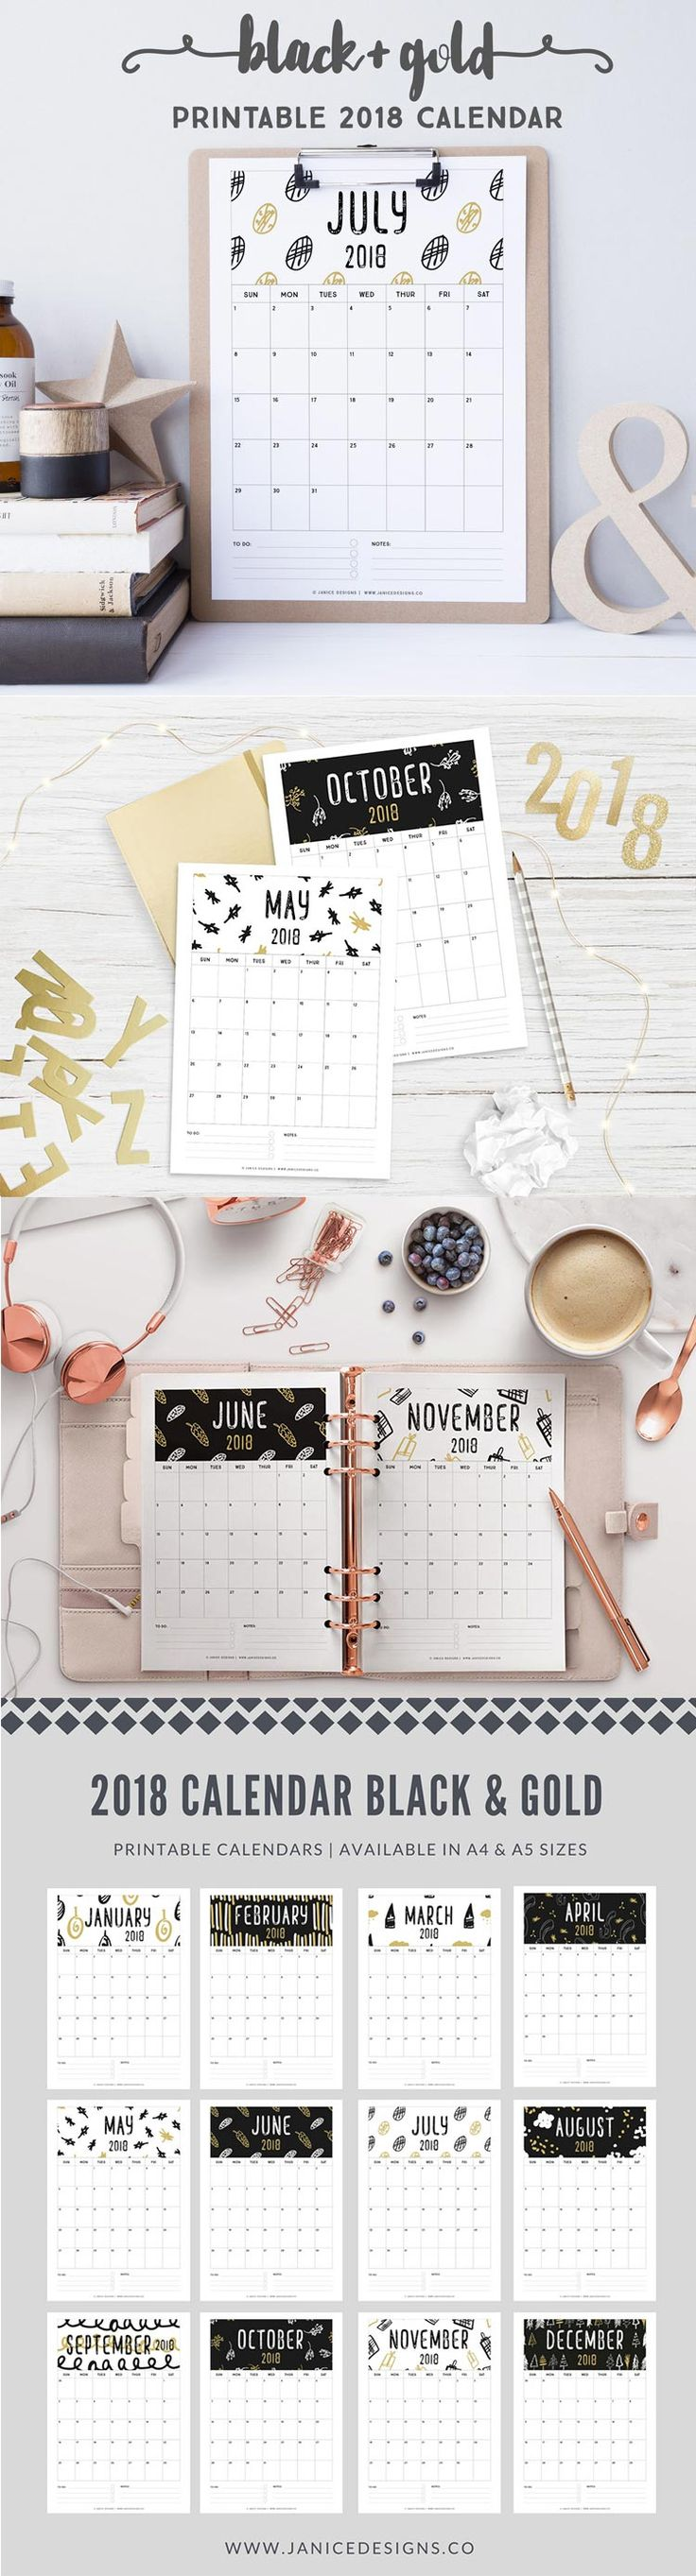 2018 Printable Calendar: Black & Gold